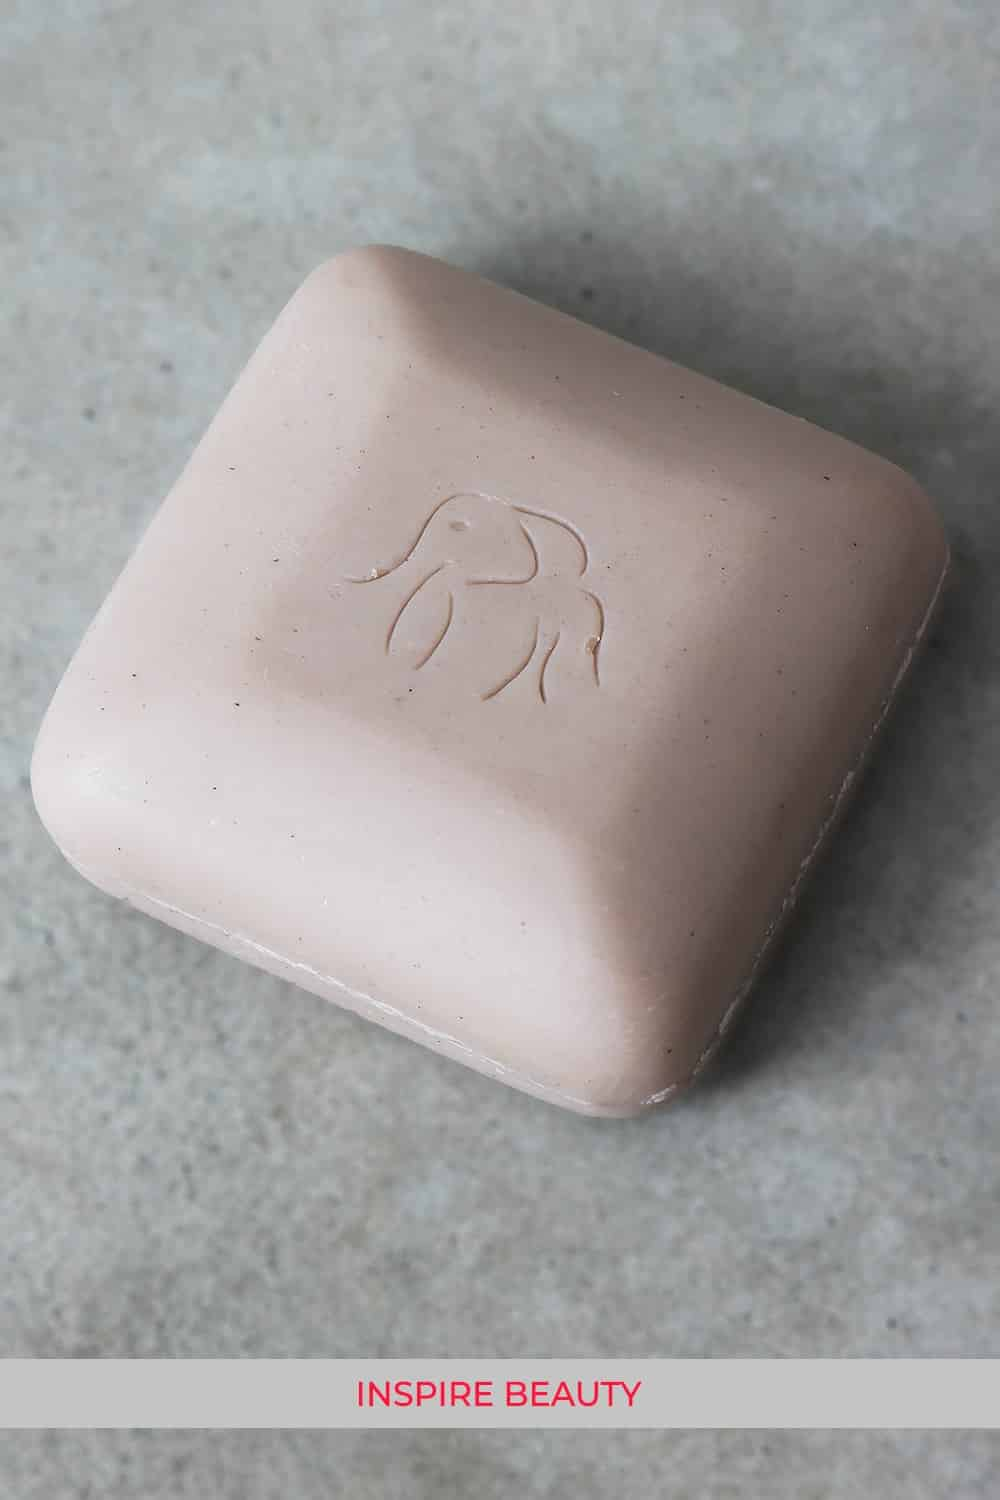 Drunk Elephant Juju Bar review, this is a mild exfoliating cleansing bar, not only good for the face but body too.